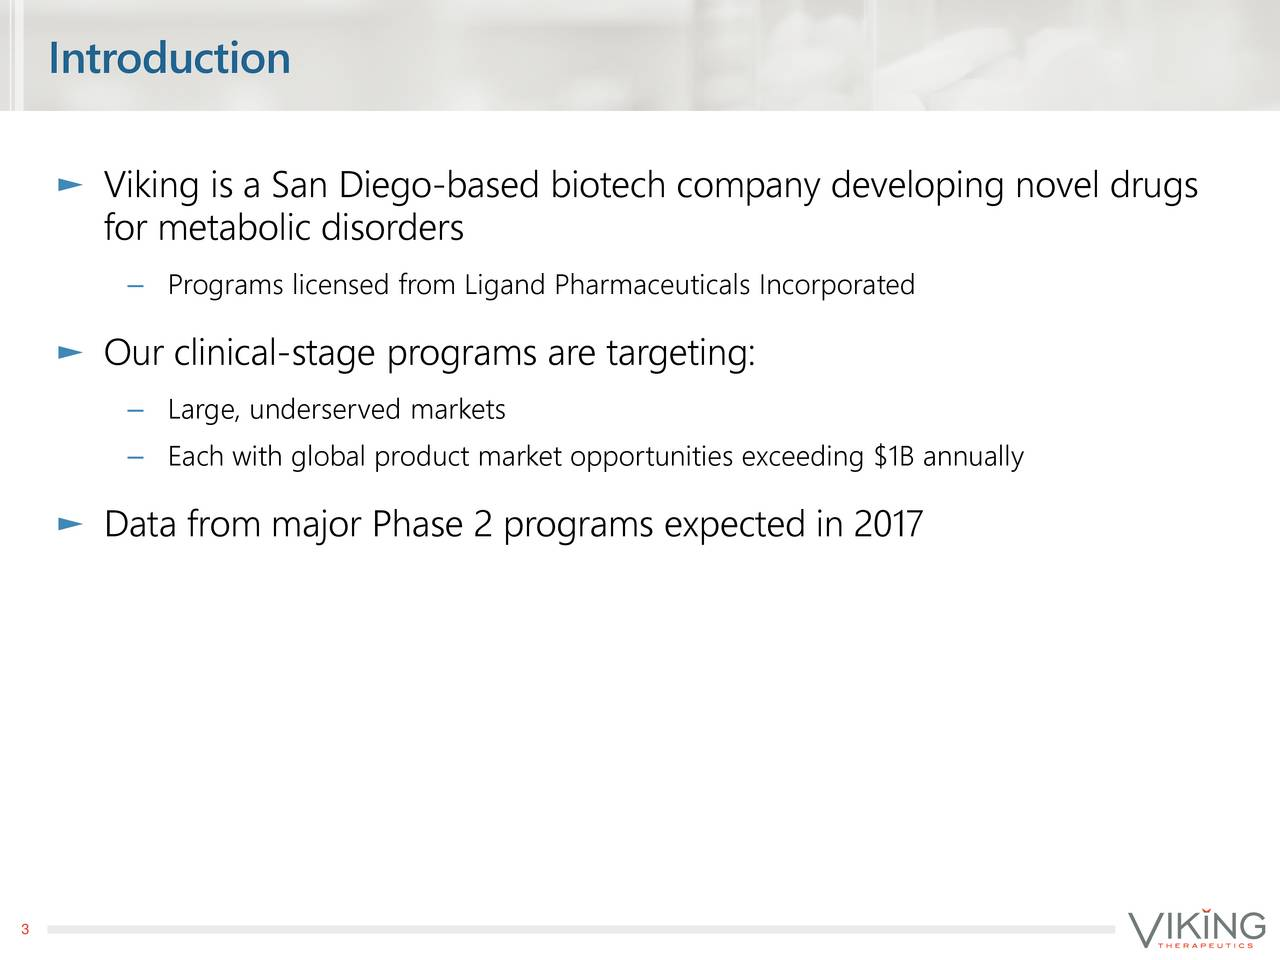 Viking is a San Di-based biotech company developing novel drugs for metabolic disorders Programs licensed from Ligand Pharmaceuticals Incorporated Our clinical-stage programs are targeting: Large, underserved markets Each with global product market opportunities exceeding $1B annually Data from major Phase 2 programs expected in 2017 3